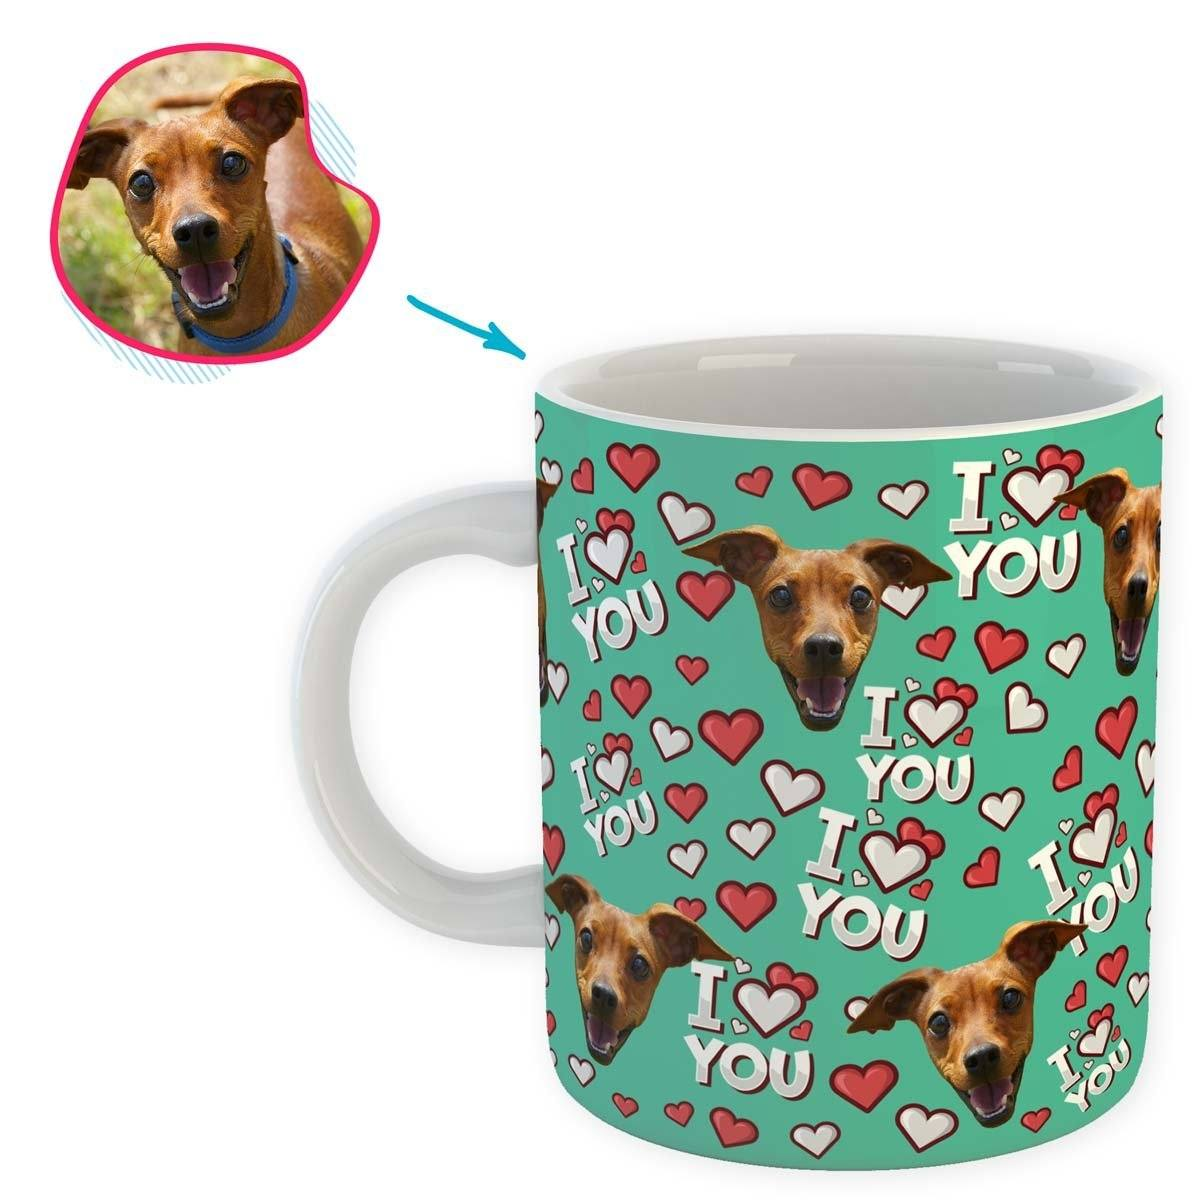 mint I Love You mug personalized with photo of face printed on it